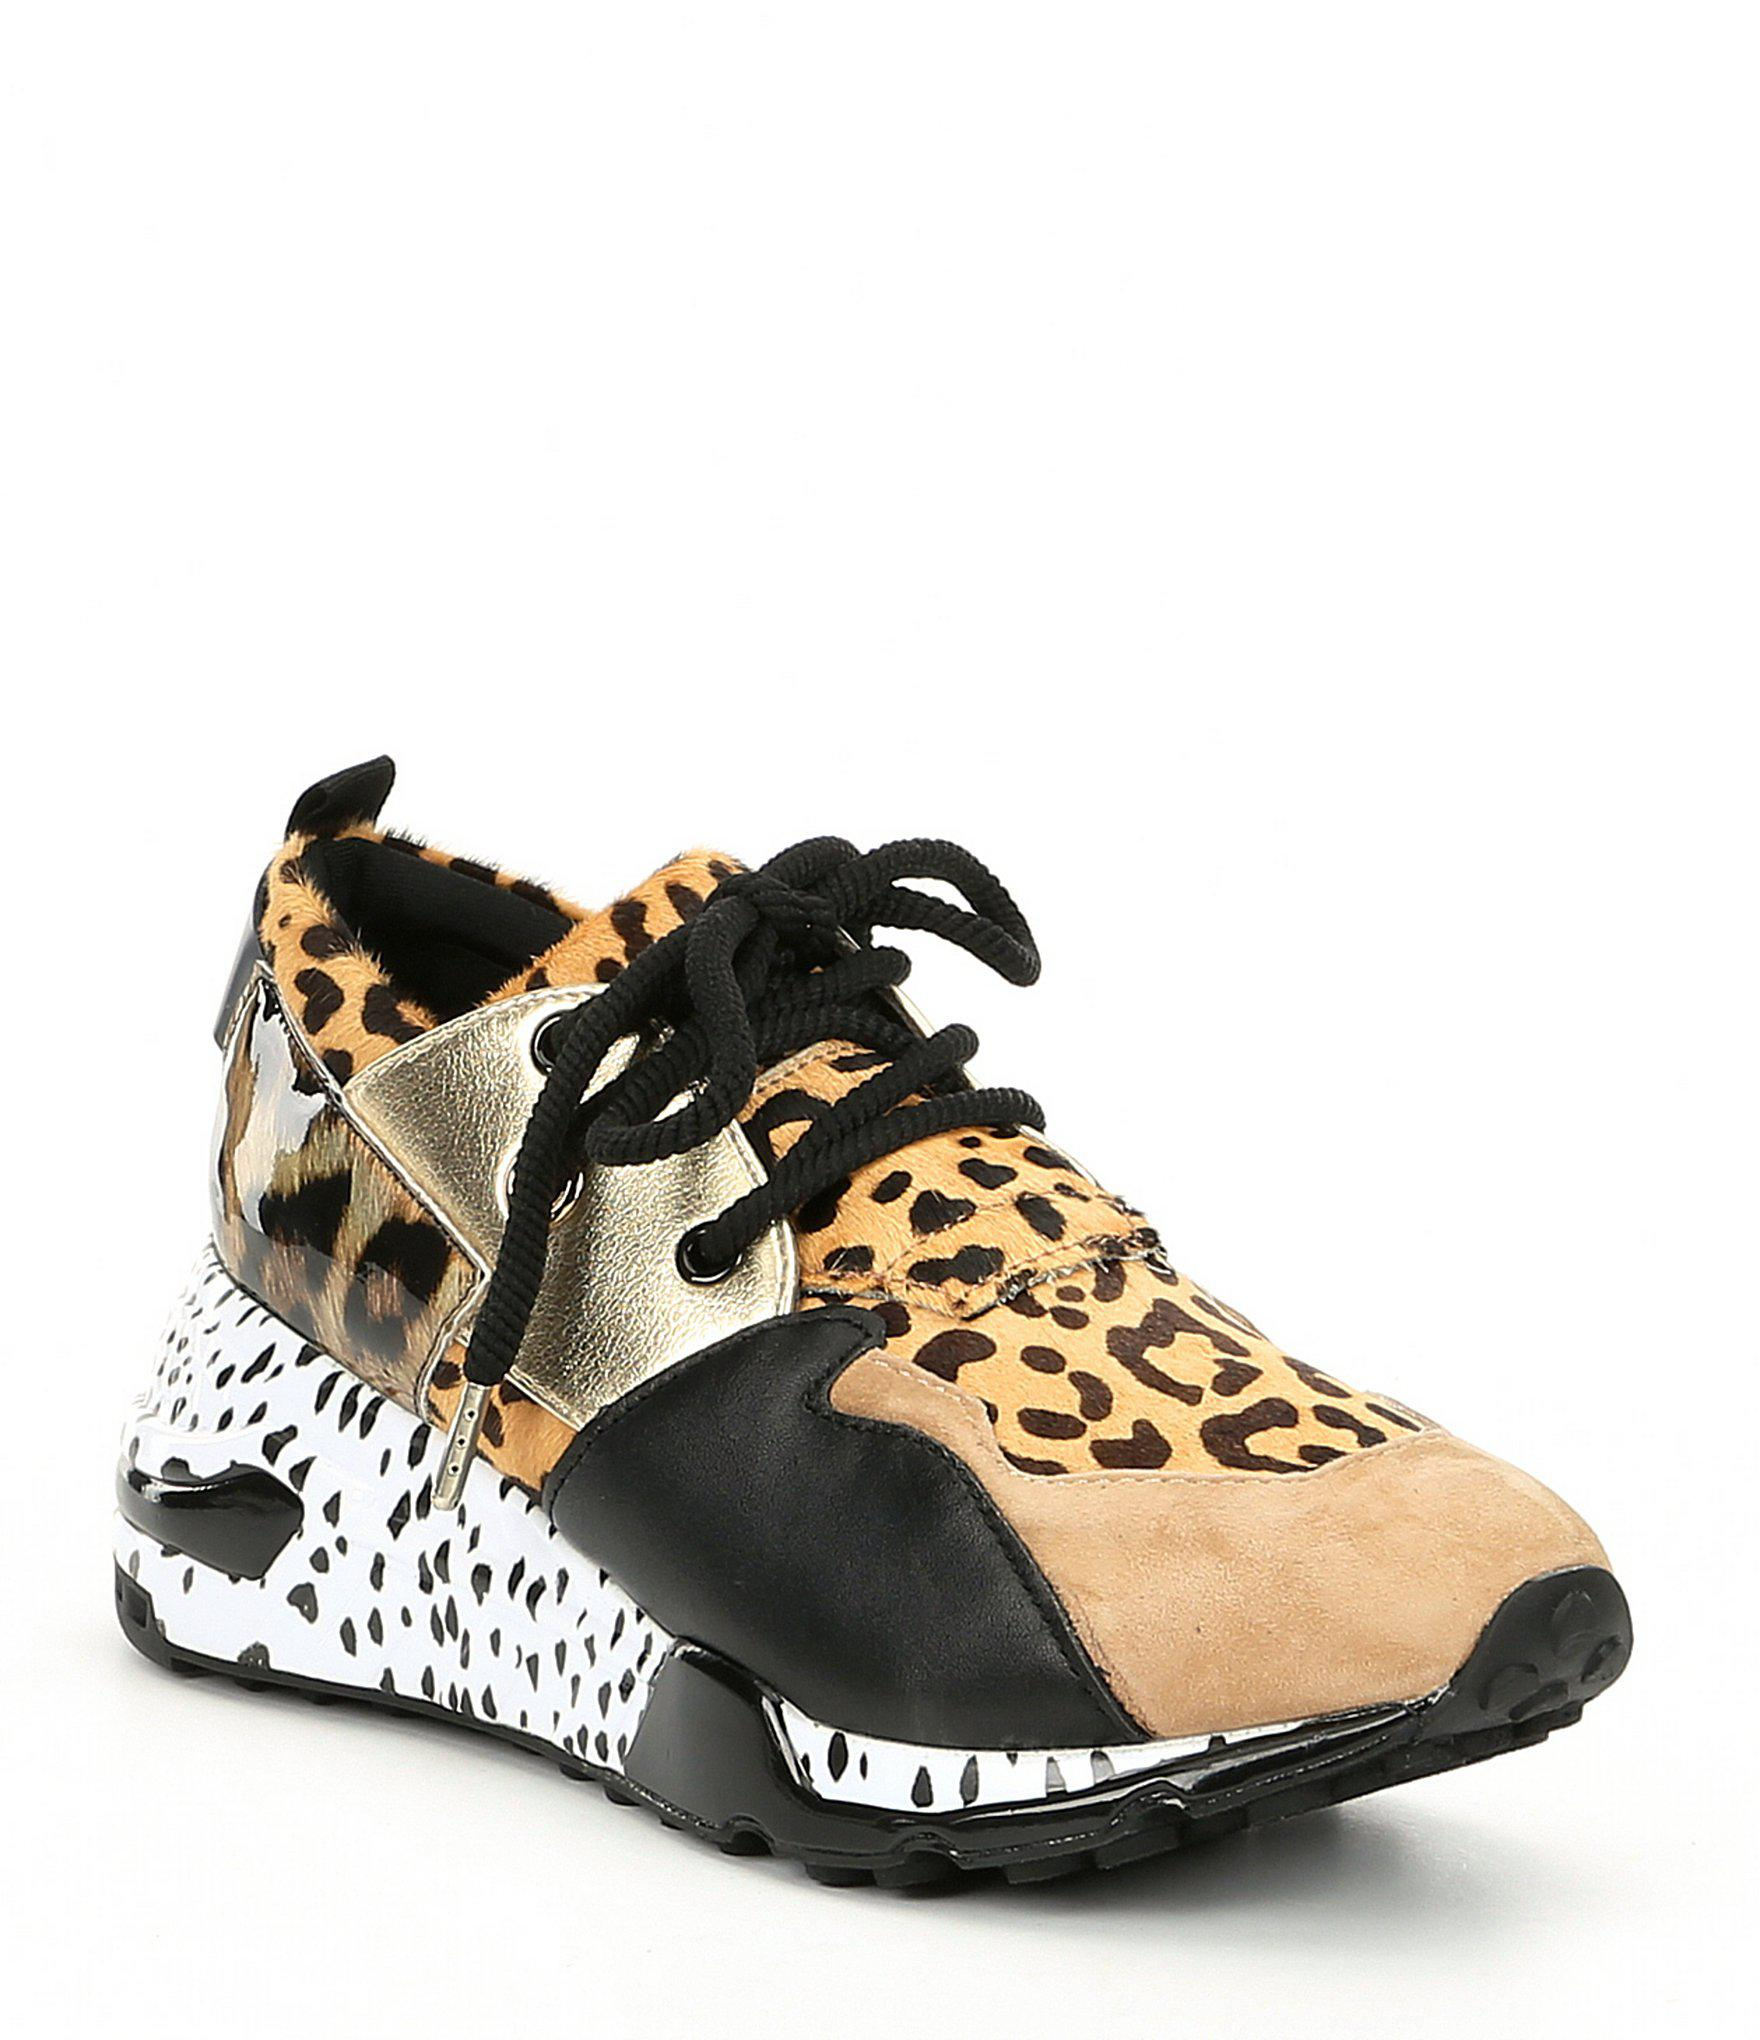 0c3f0a29137 Steve Madden Cliff Leather And Suede Animal Print Sneakers - Lyst